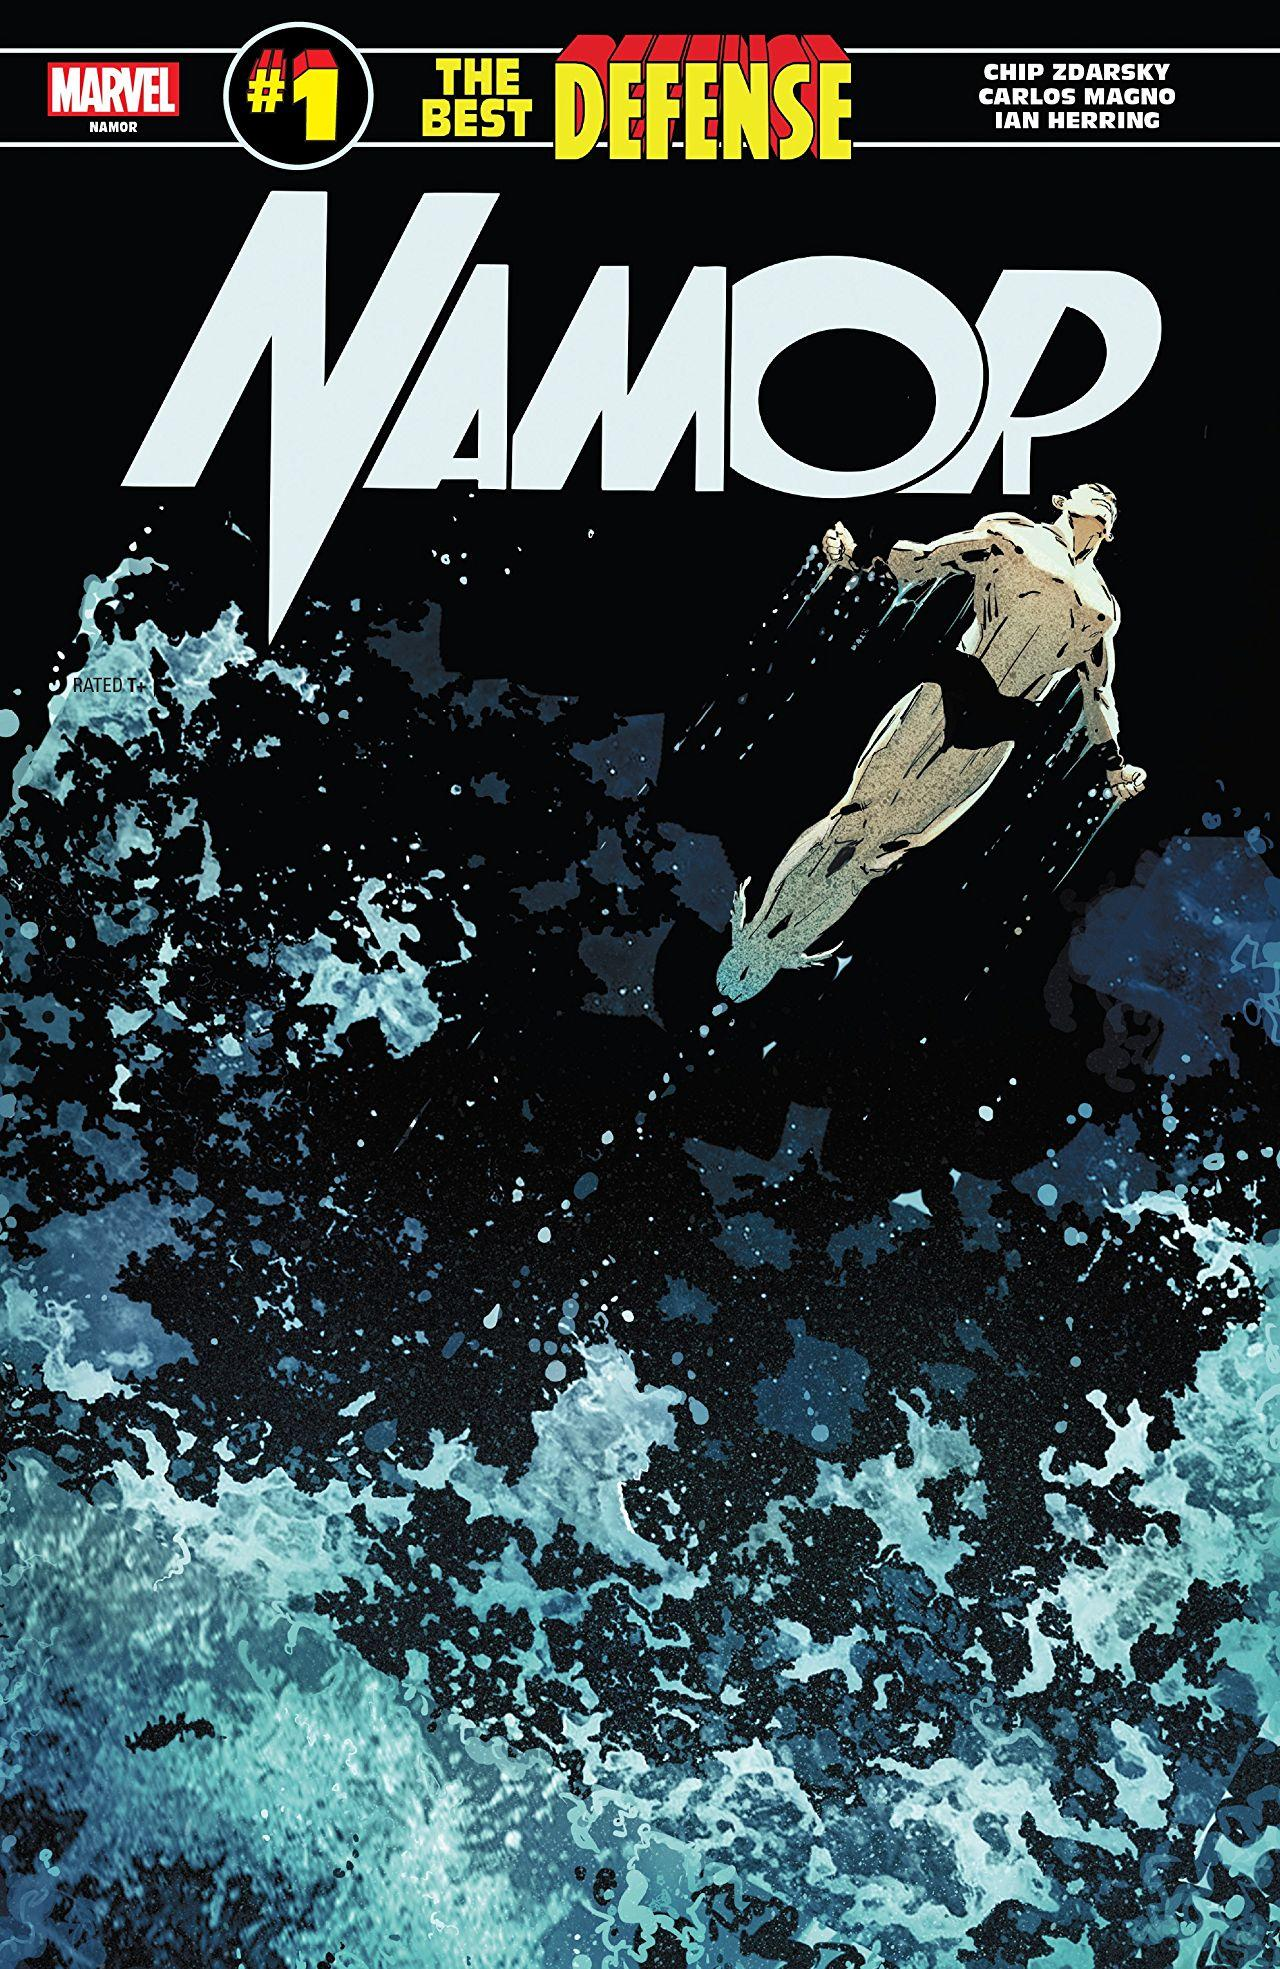 Namor: The Best Defense #1cover by Ron Garney